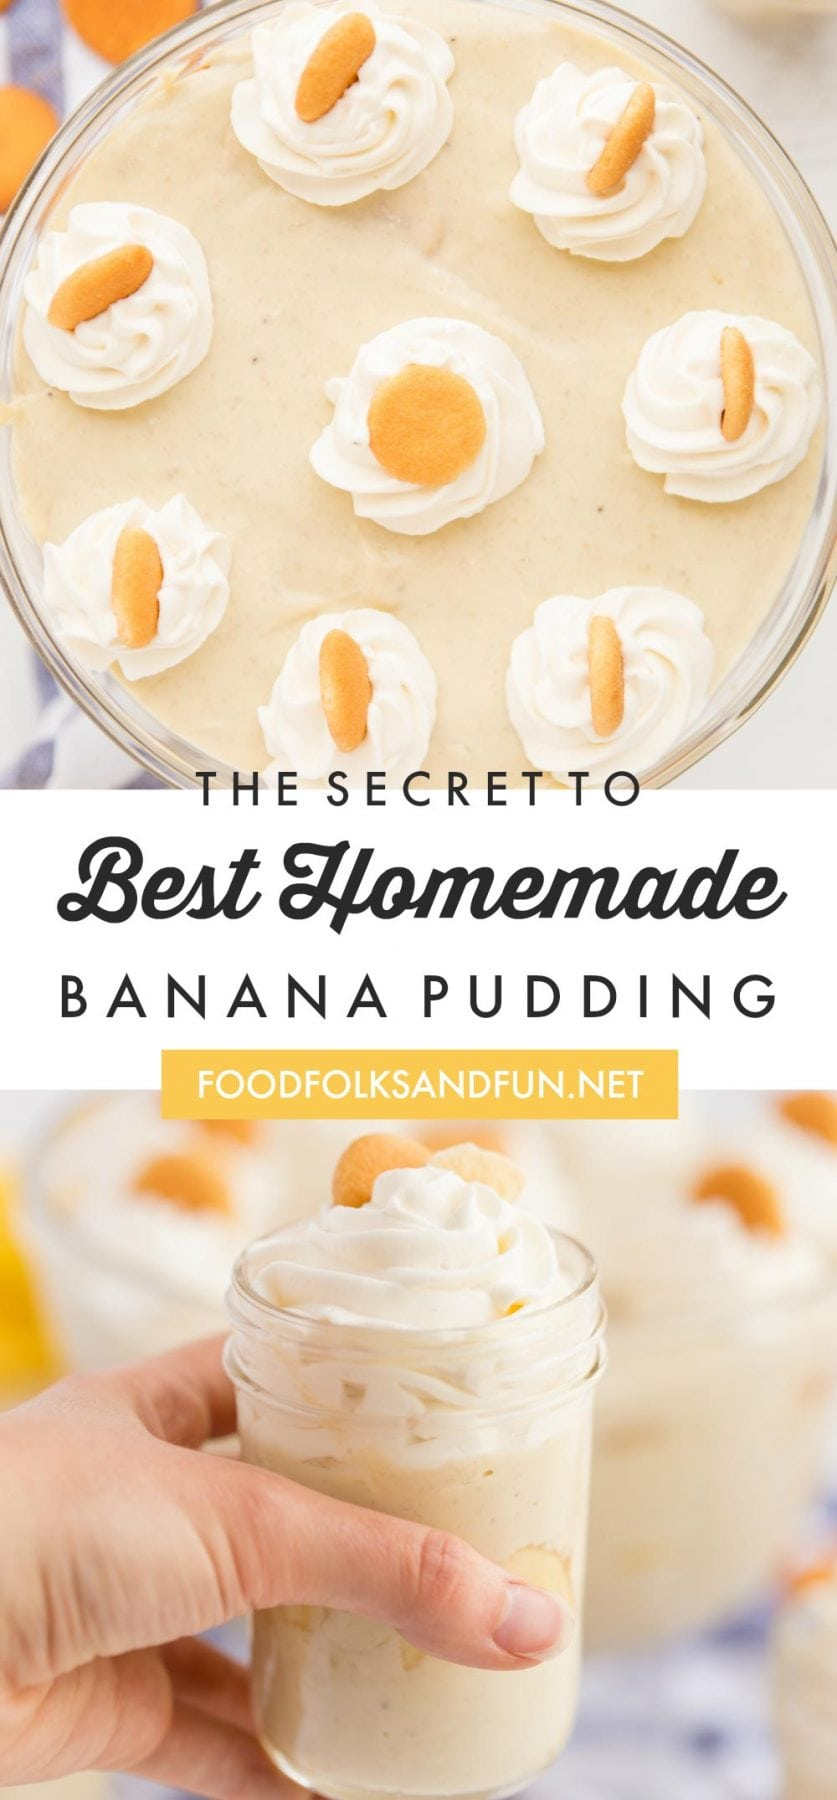 This Banana pudding is full of banana flavor just like it should be! Come and check out the secret to a fruity, homemade banana pudding recipe that will transcend you back to your childhood! via @foodfolksandfun